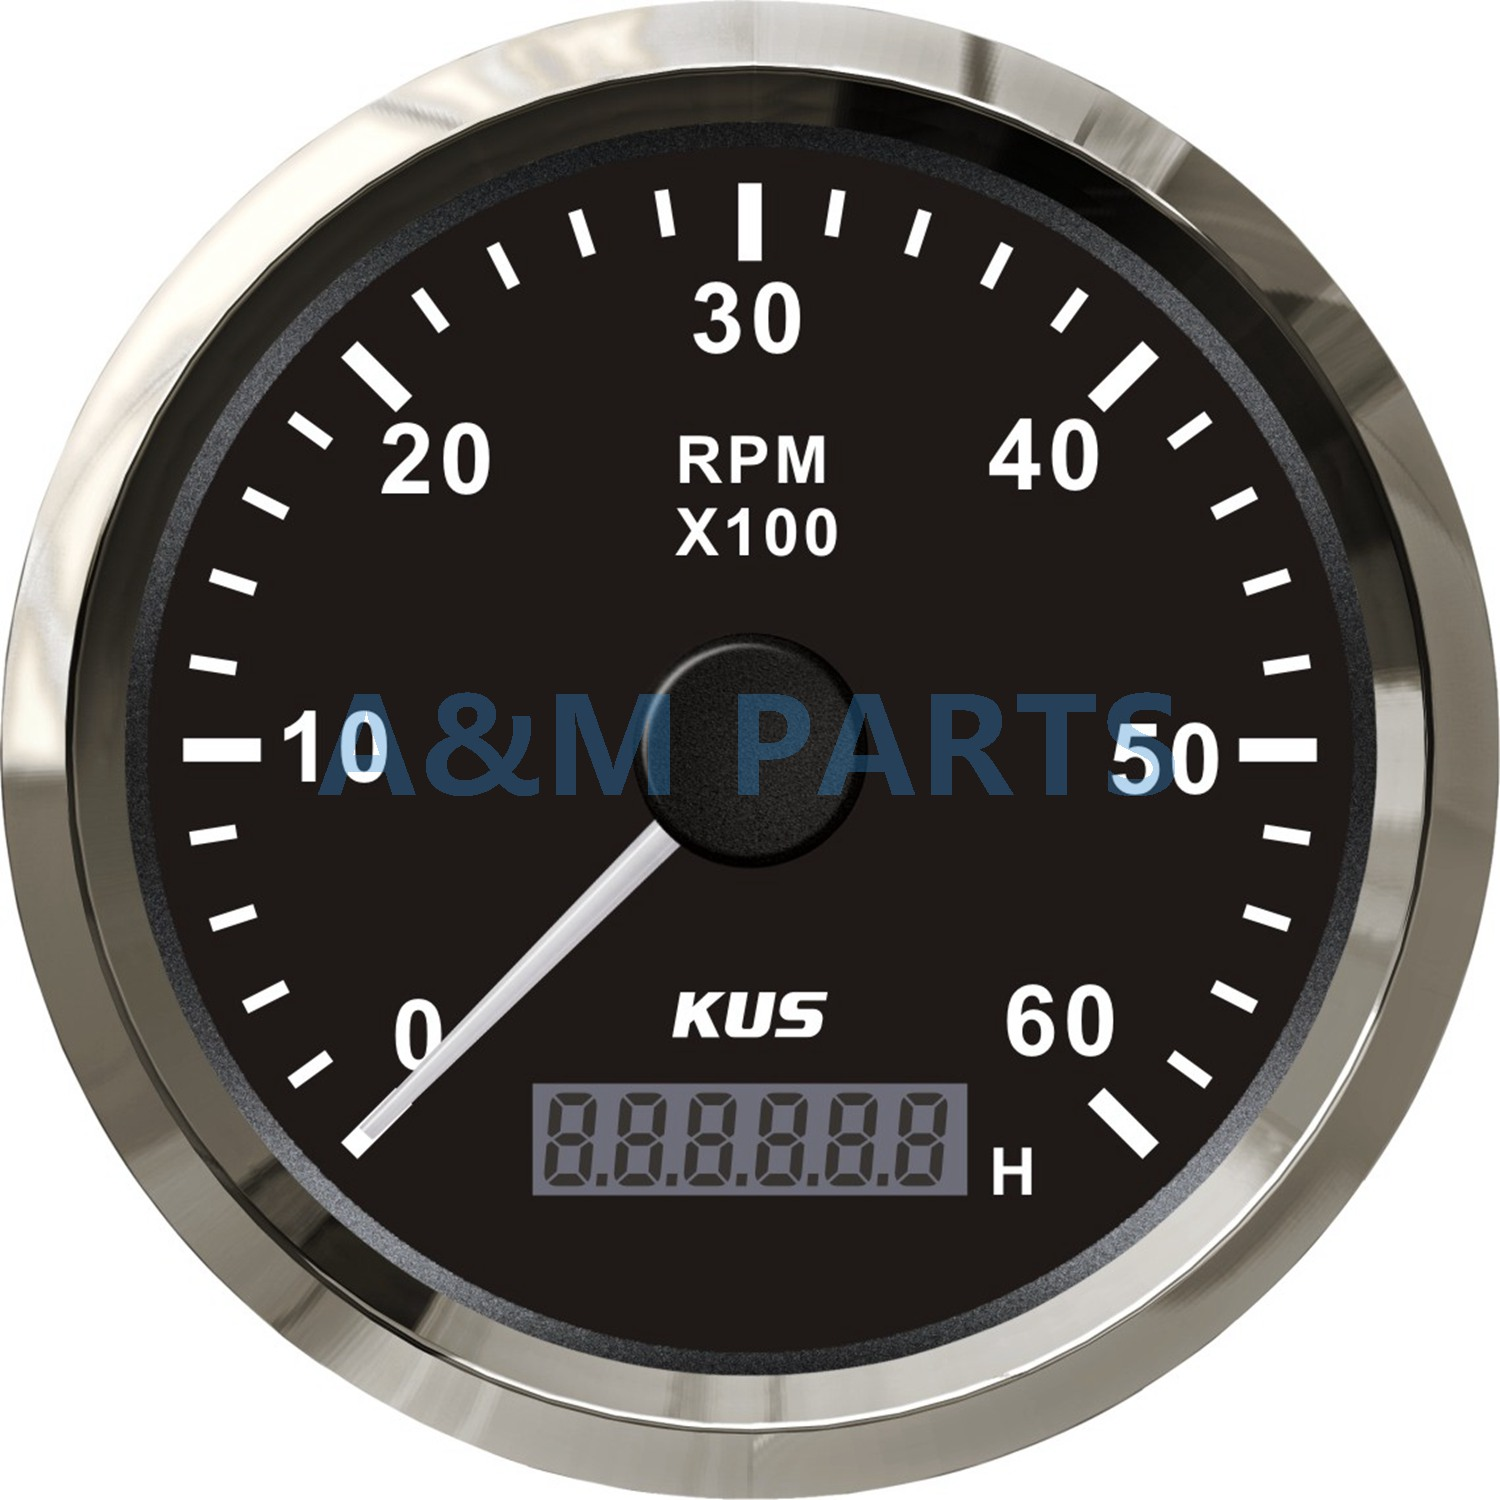 KUS Marine Tachometer Gauge With LED Hourmeter Boat Truck Car RV Waterproof RPM Tacho Meter 6000 RPM 85mm Speed Ration 1-10 kus marine outboard tachometer with led hourmeter boat truck car rv waterproof rpm meter 6000 rpm 85mm speed ration 1 10